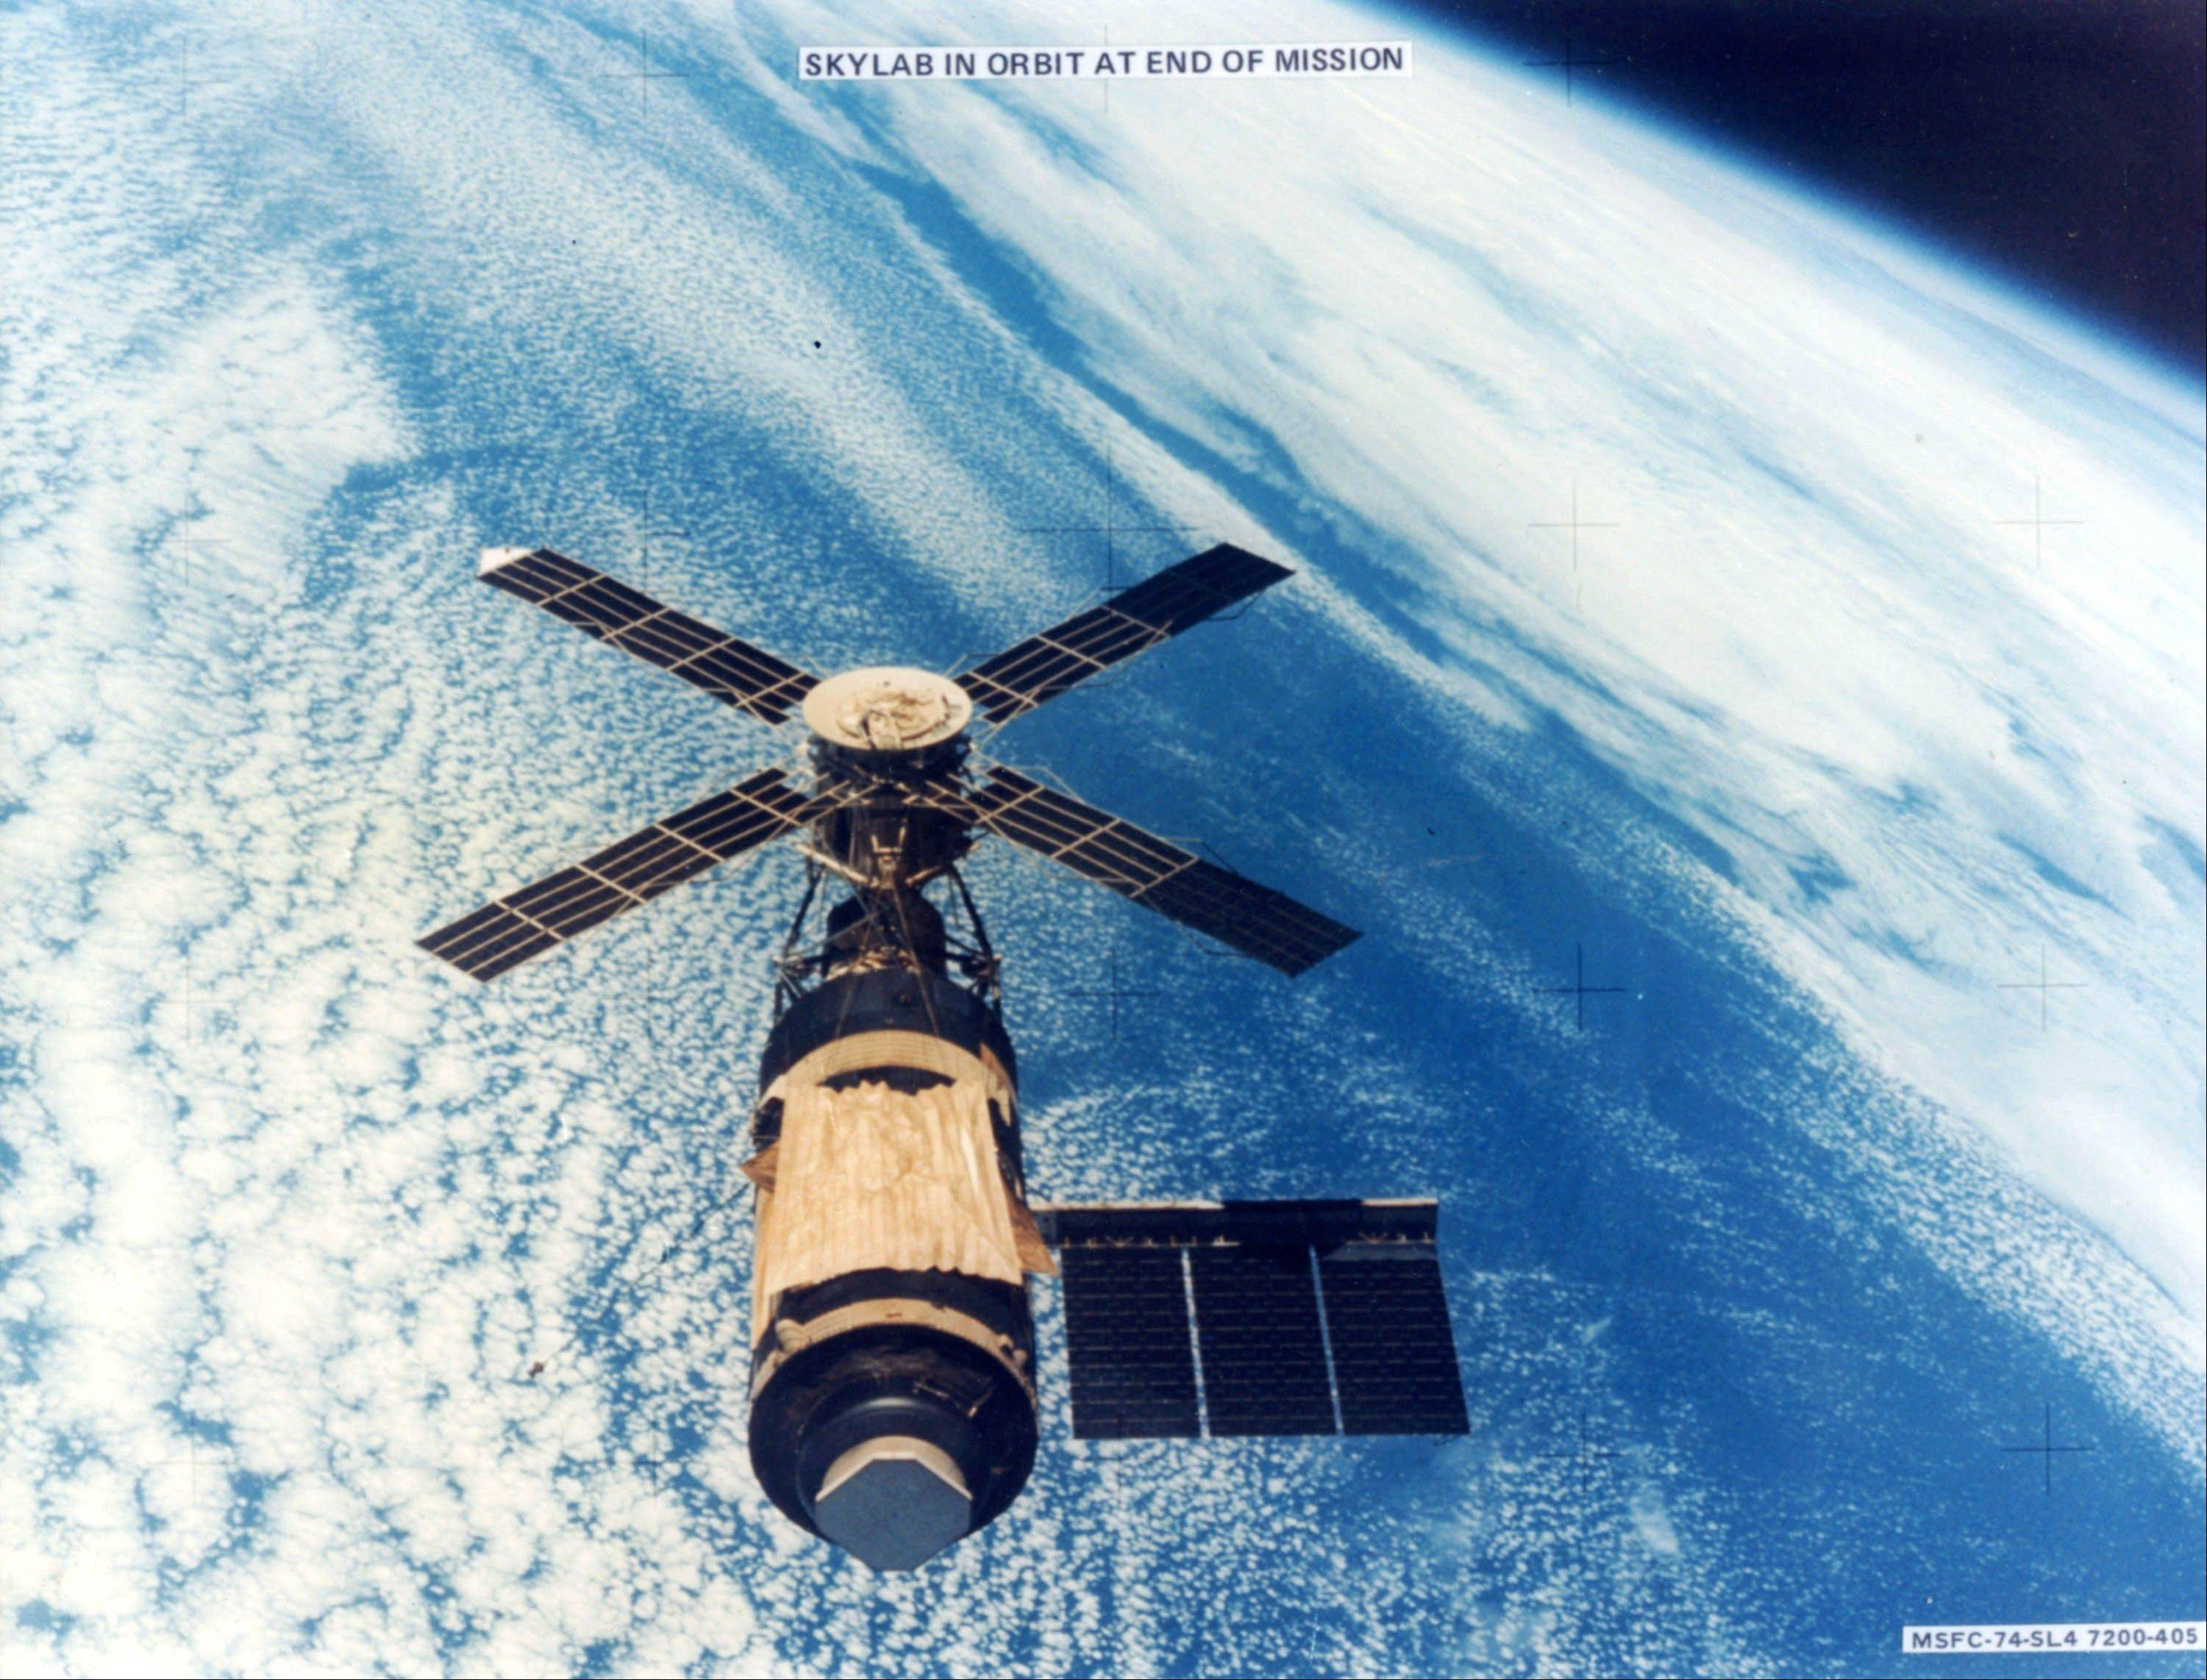 This is a 1979 file image of Skylab, at the end of its mission in 1979 when it crashed back to Earth. Skylab was the first United States manned space station and was launched on May 14, 1973. It is now regarded as one of the best-known of falling satellites, re-entering the atmosphere in 1979. About 82 tons hit the Earth -- some of it in Australia and the rest falling into the Indian Ocean.